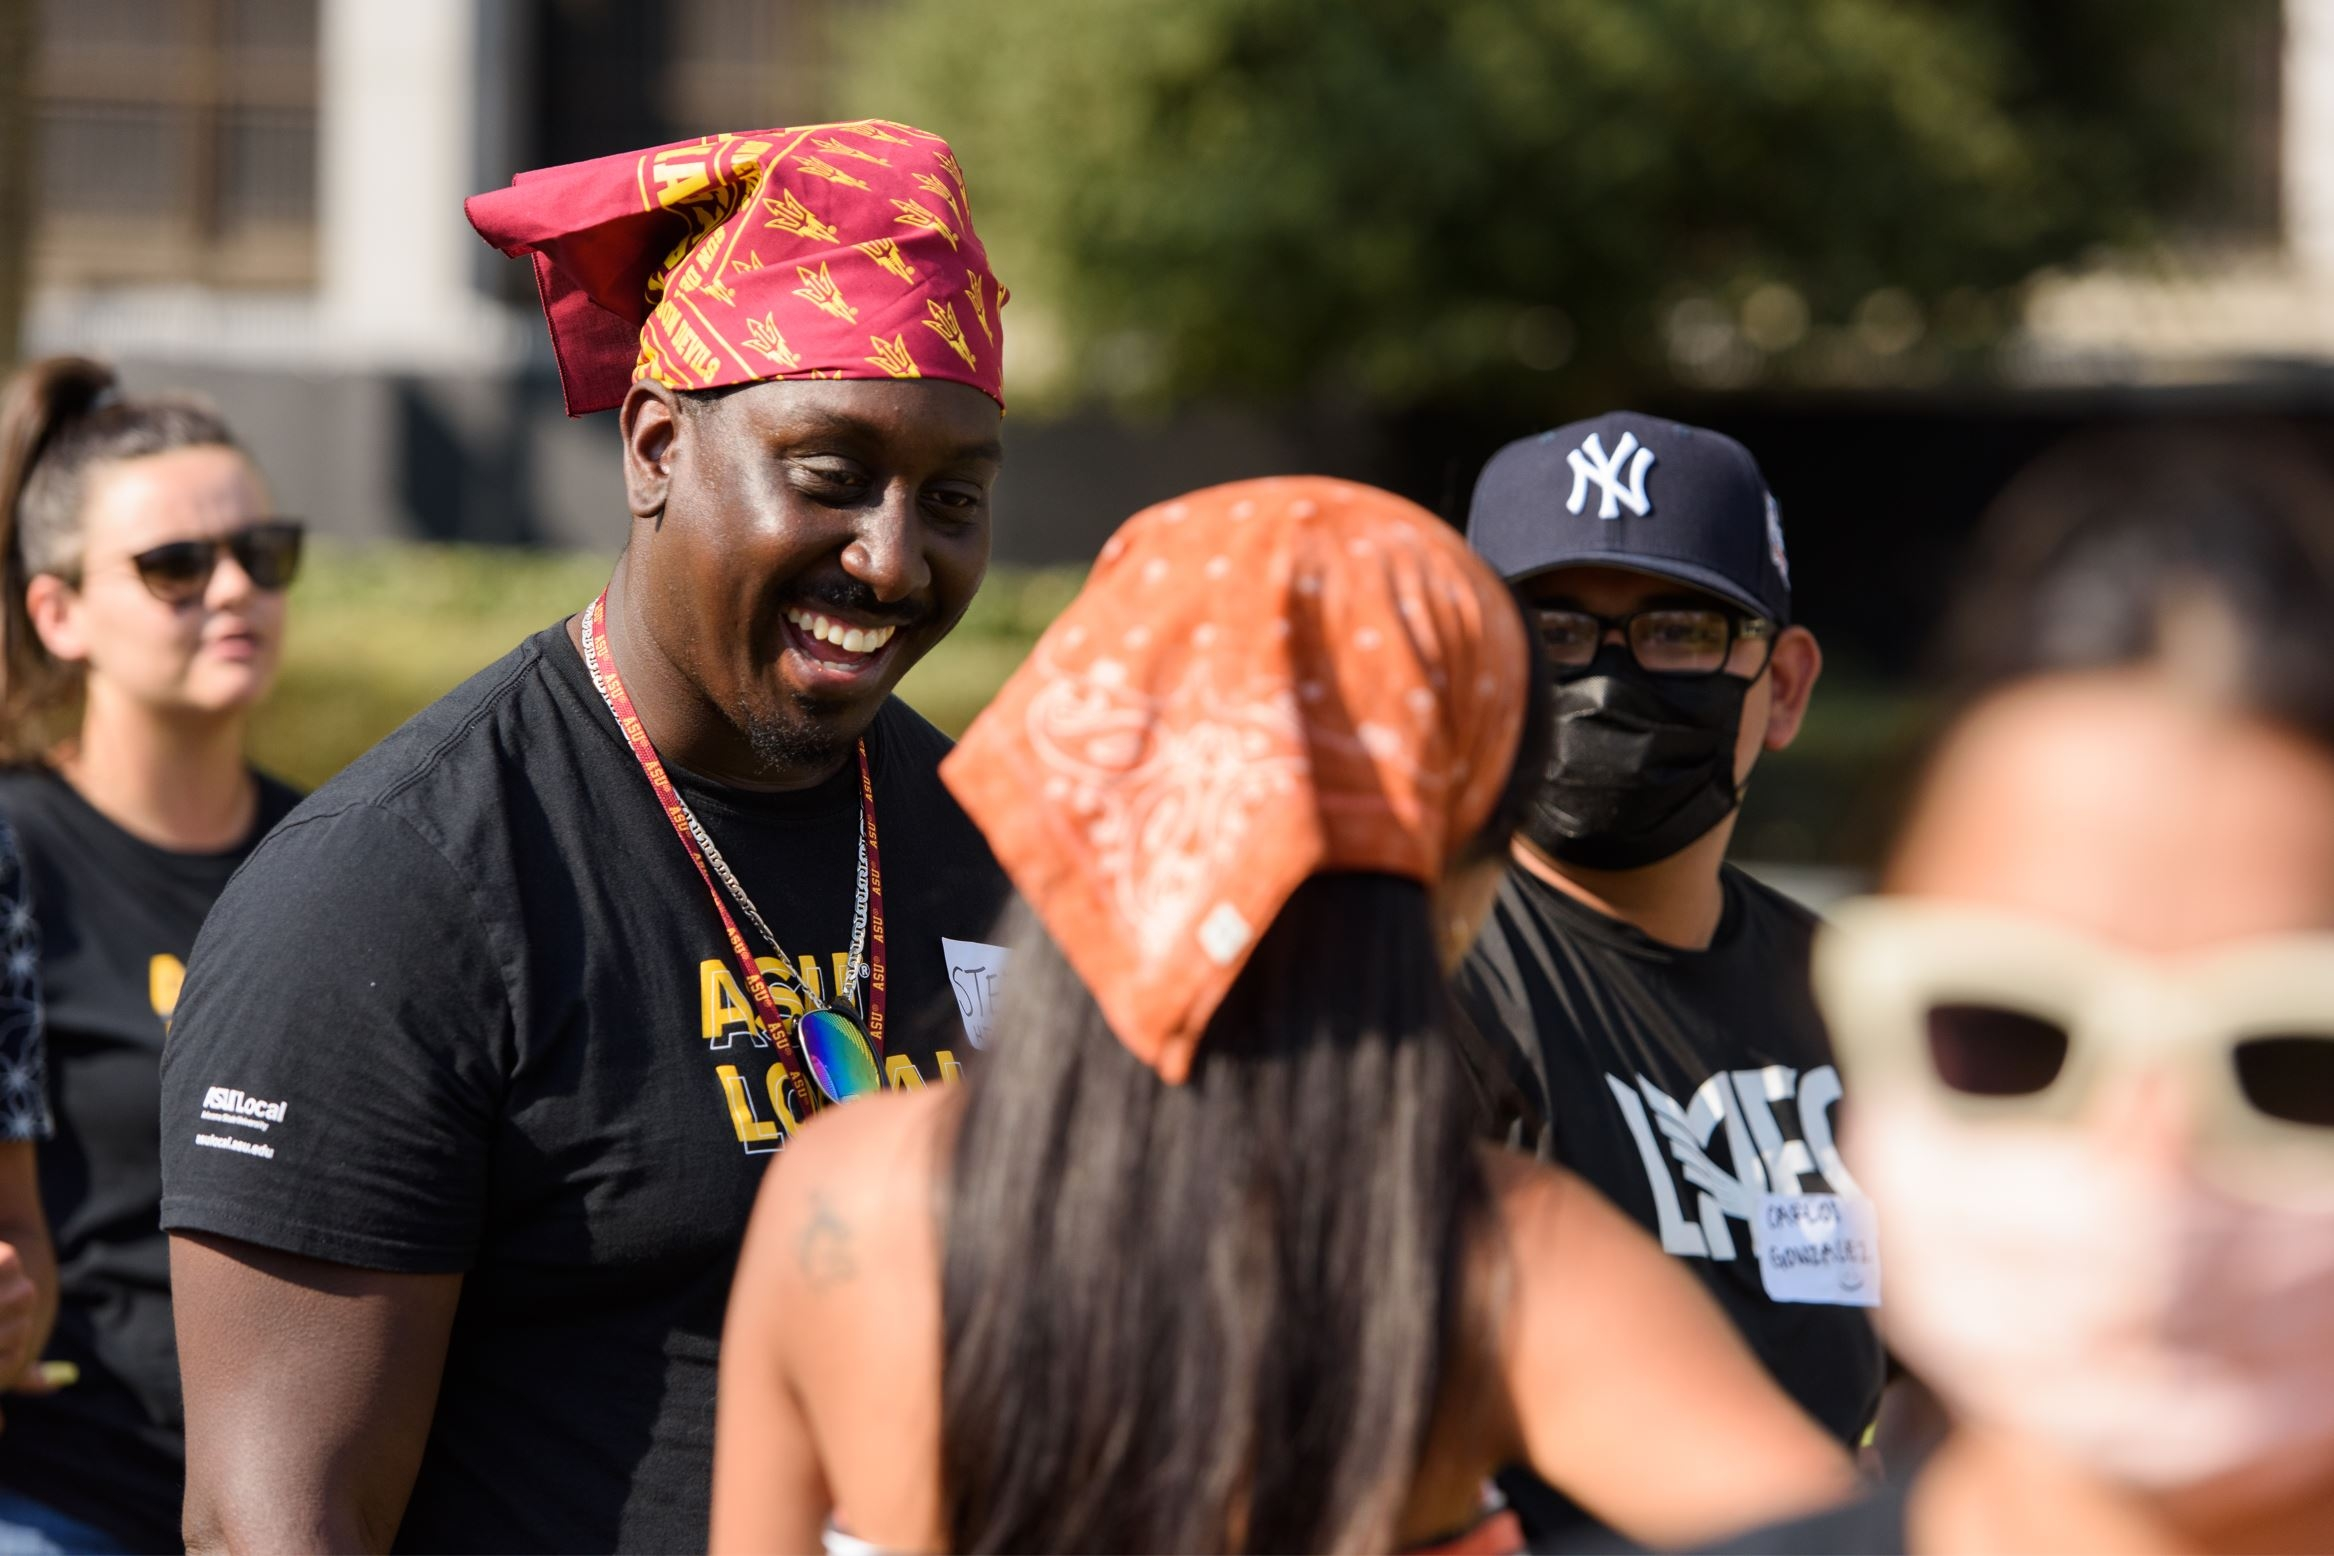 ASU Local-Los Angeles welcomes third cohort of students